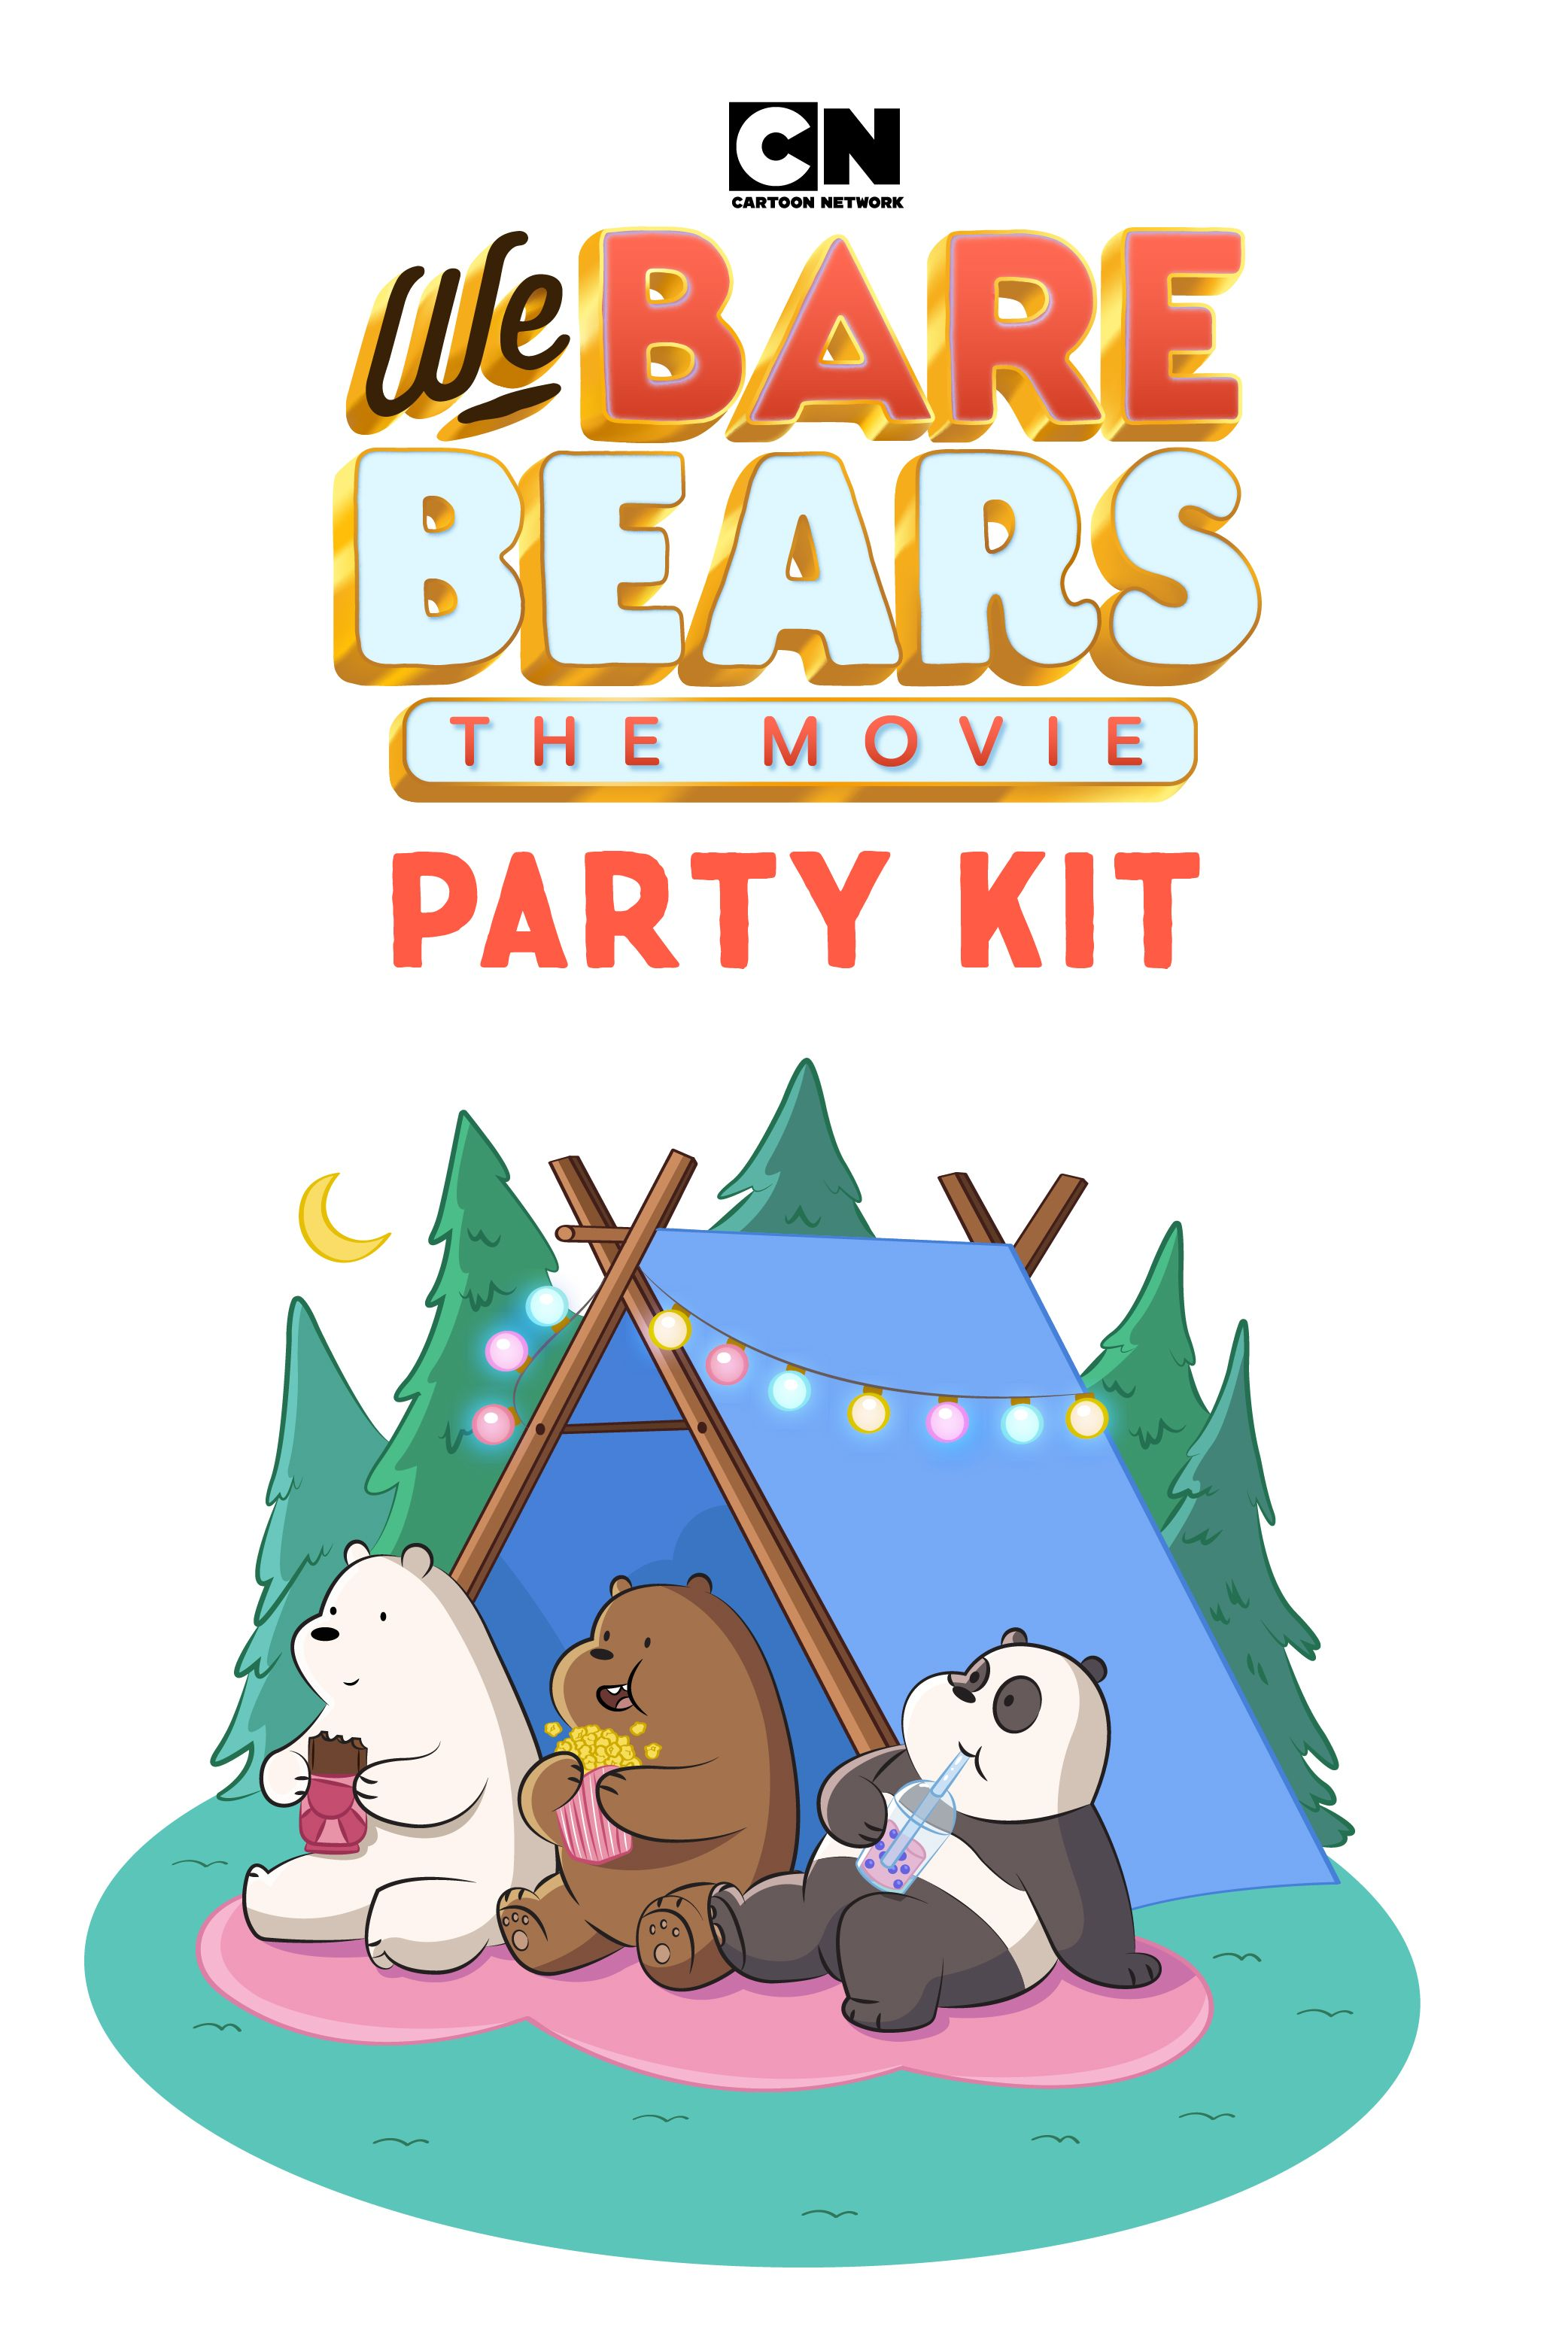 We Bare Bears Movie Printable Party Kit In 2020 We Bare Bears Party Kit Bare Bears